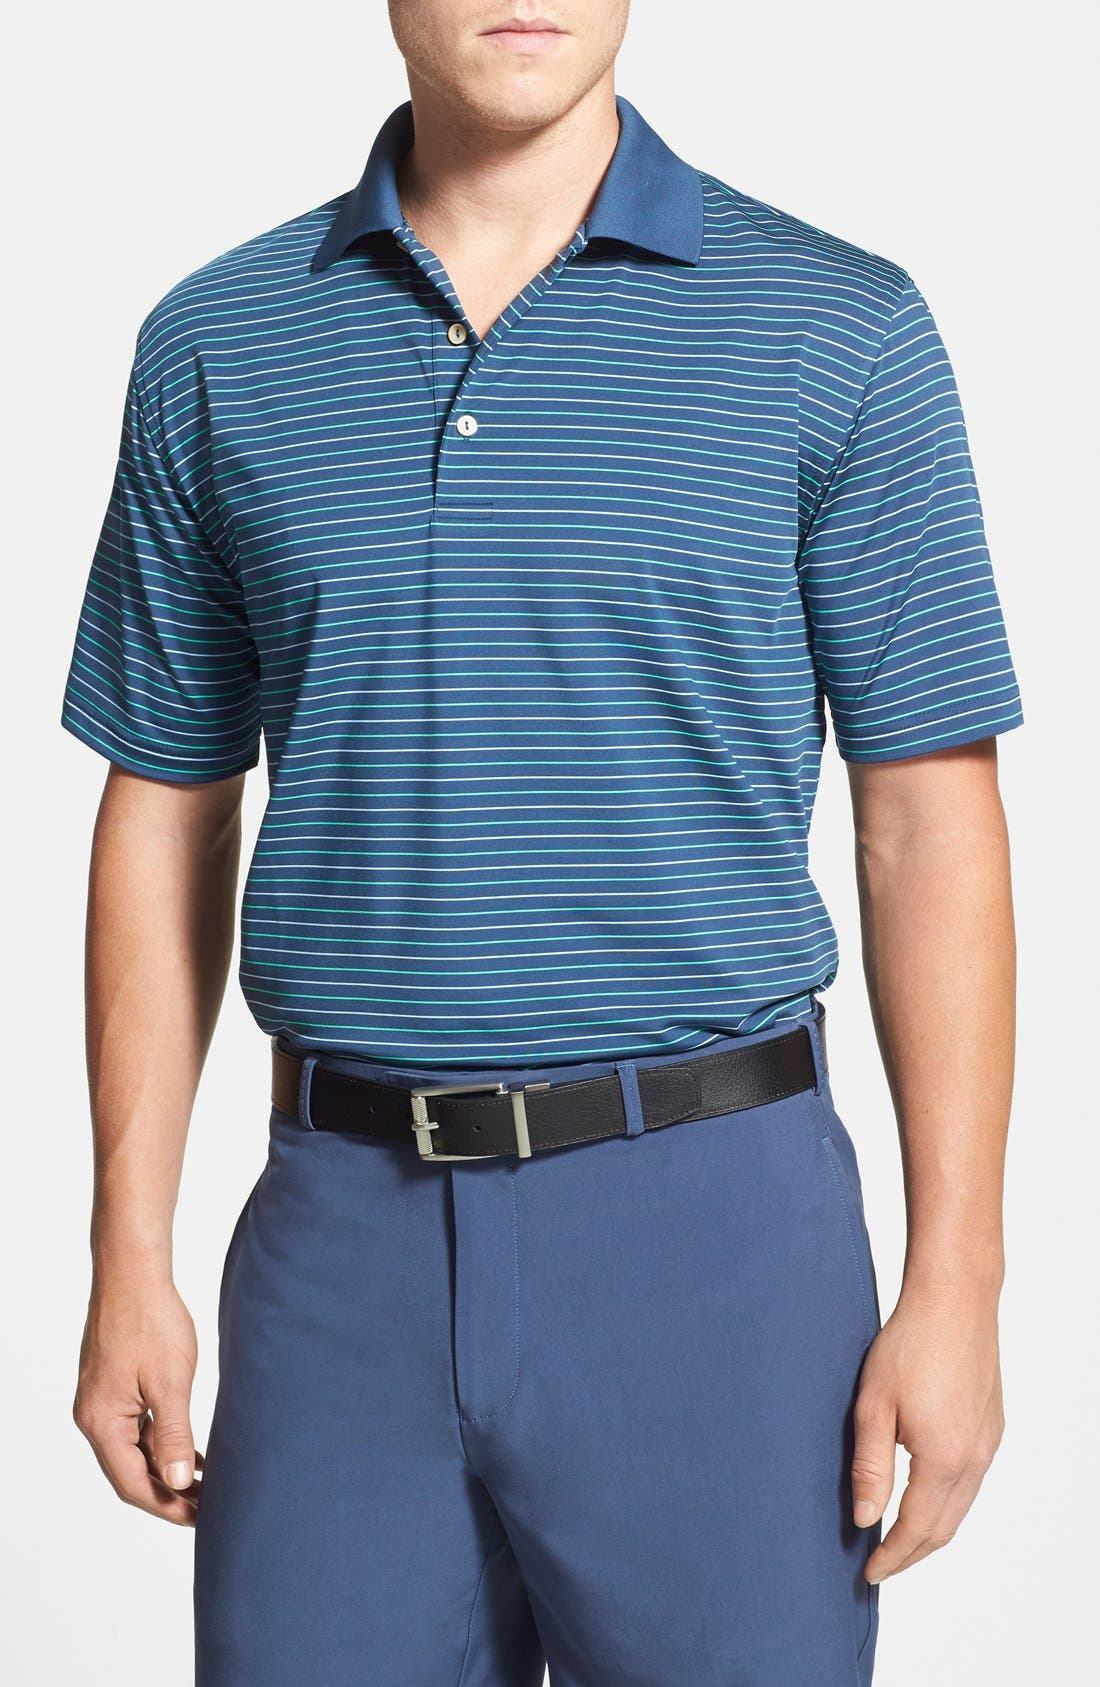 Main Image - Peter Millar 'Harnett' Stripe Stretch Jersey Polo